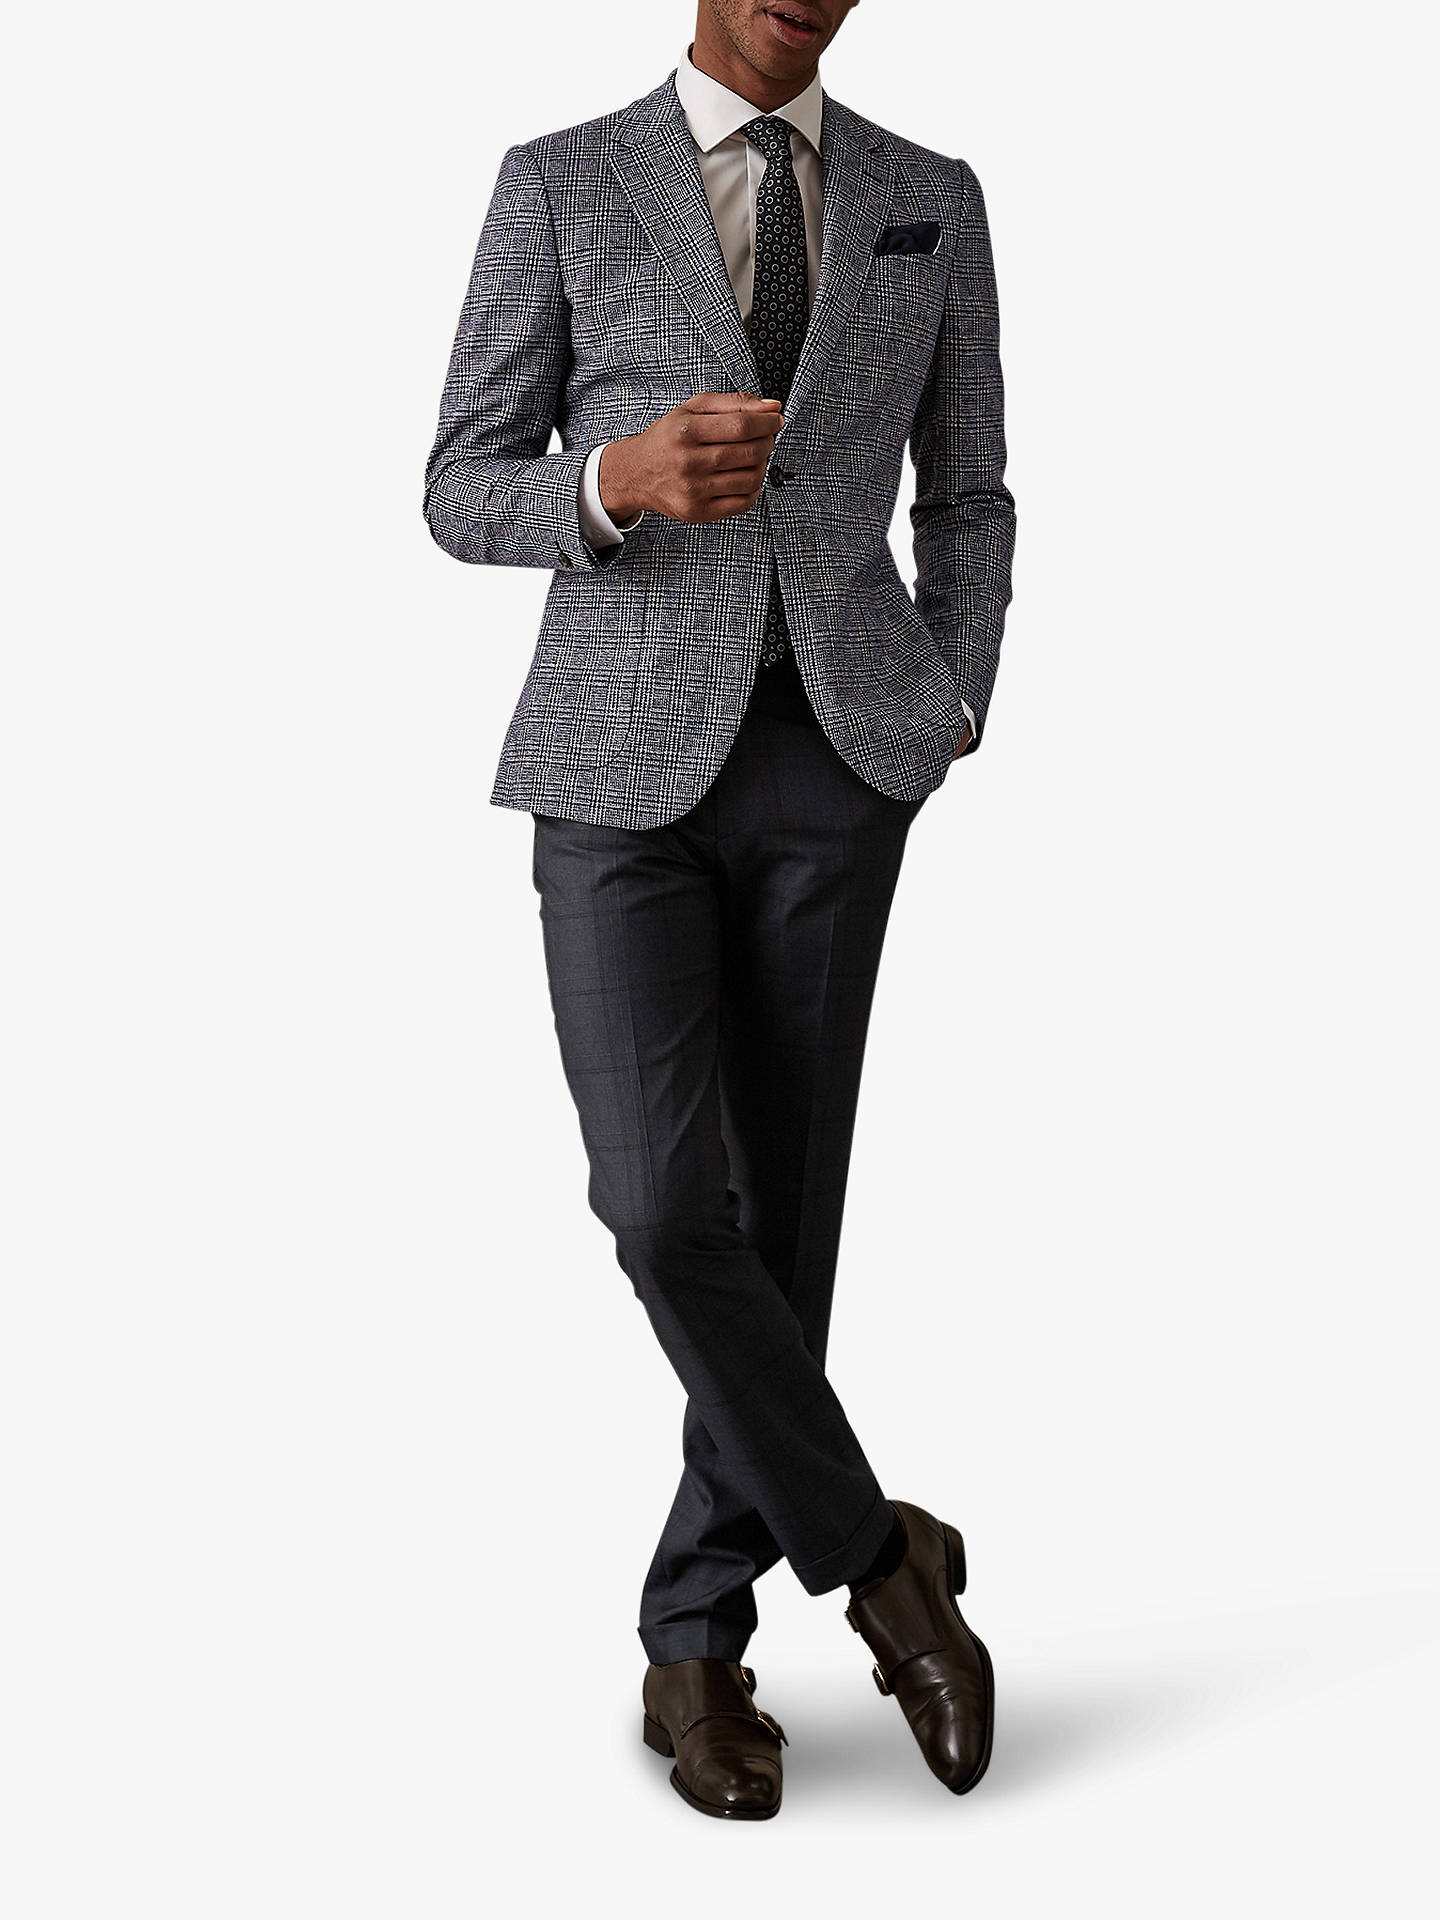 5f2739733d83 ... Buy Reiss Parker Check Tailored Trousers, Blue, 32R Online at  johnlewis.com ...